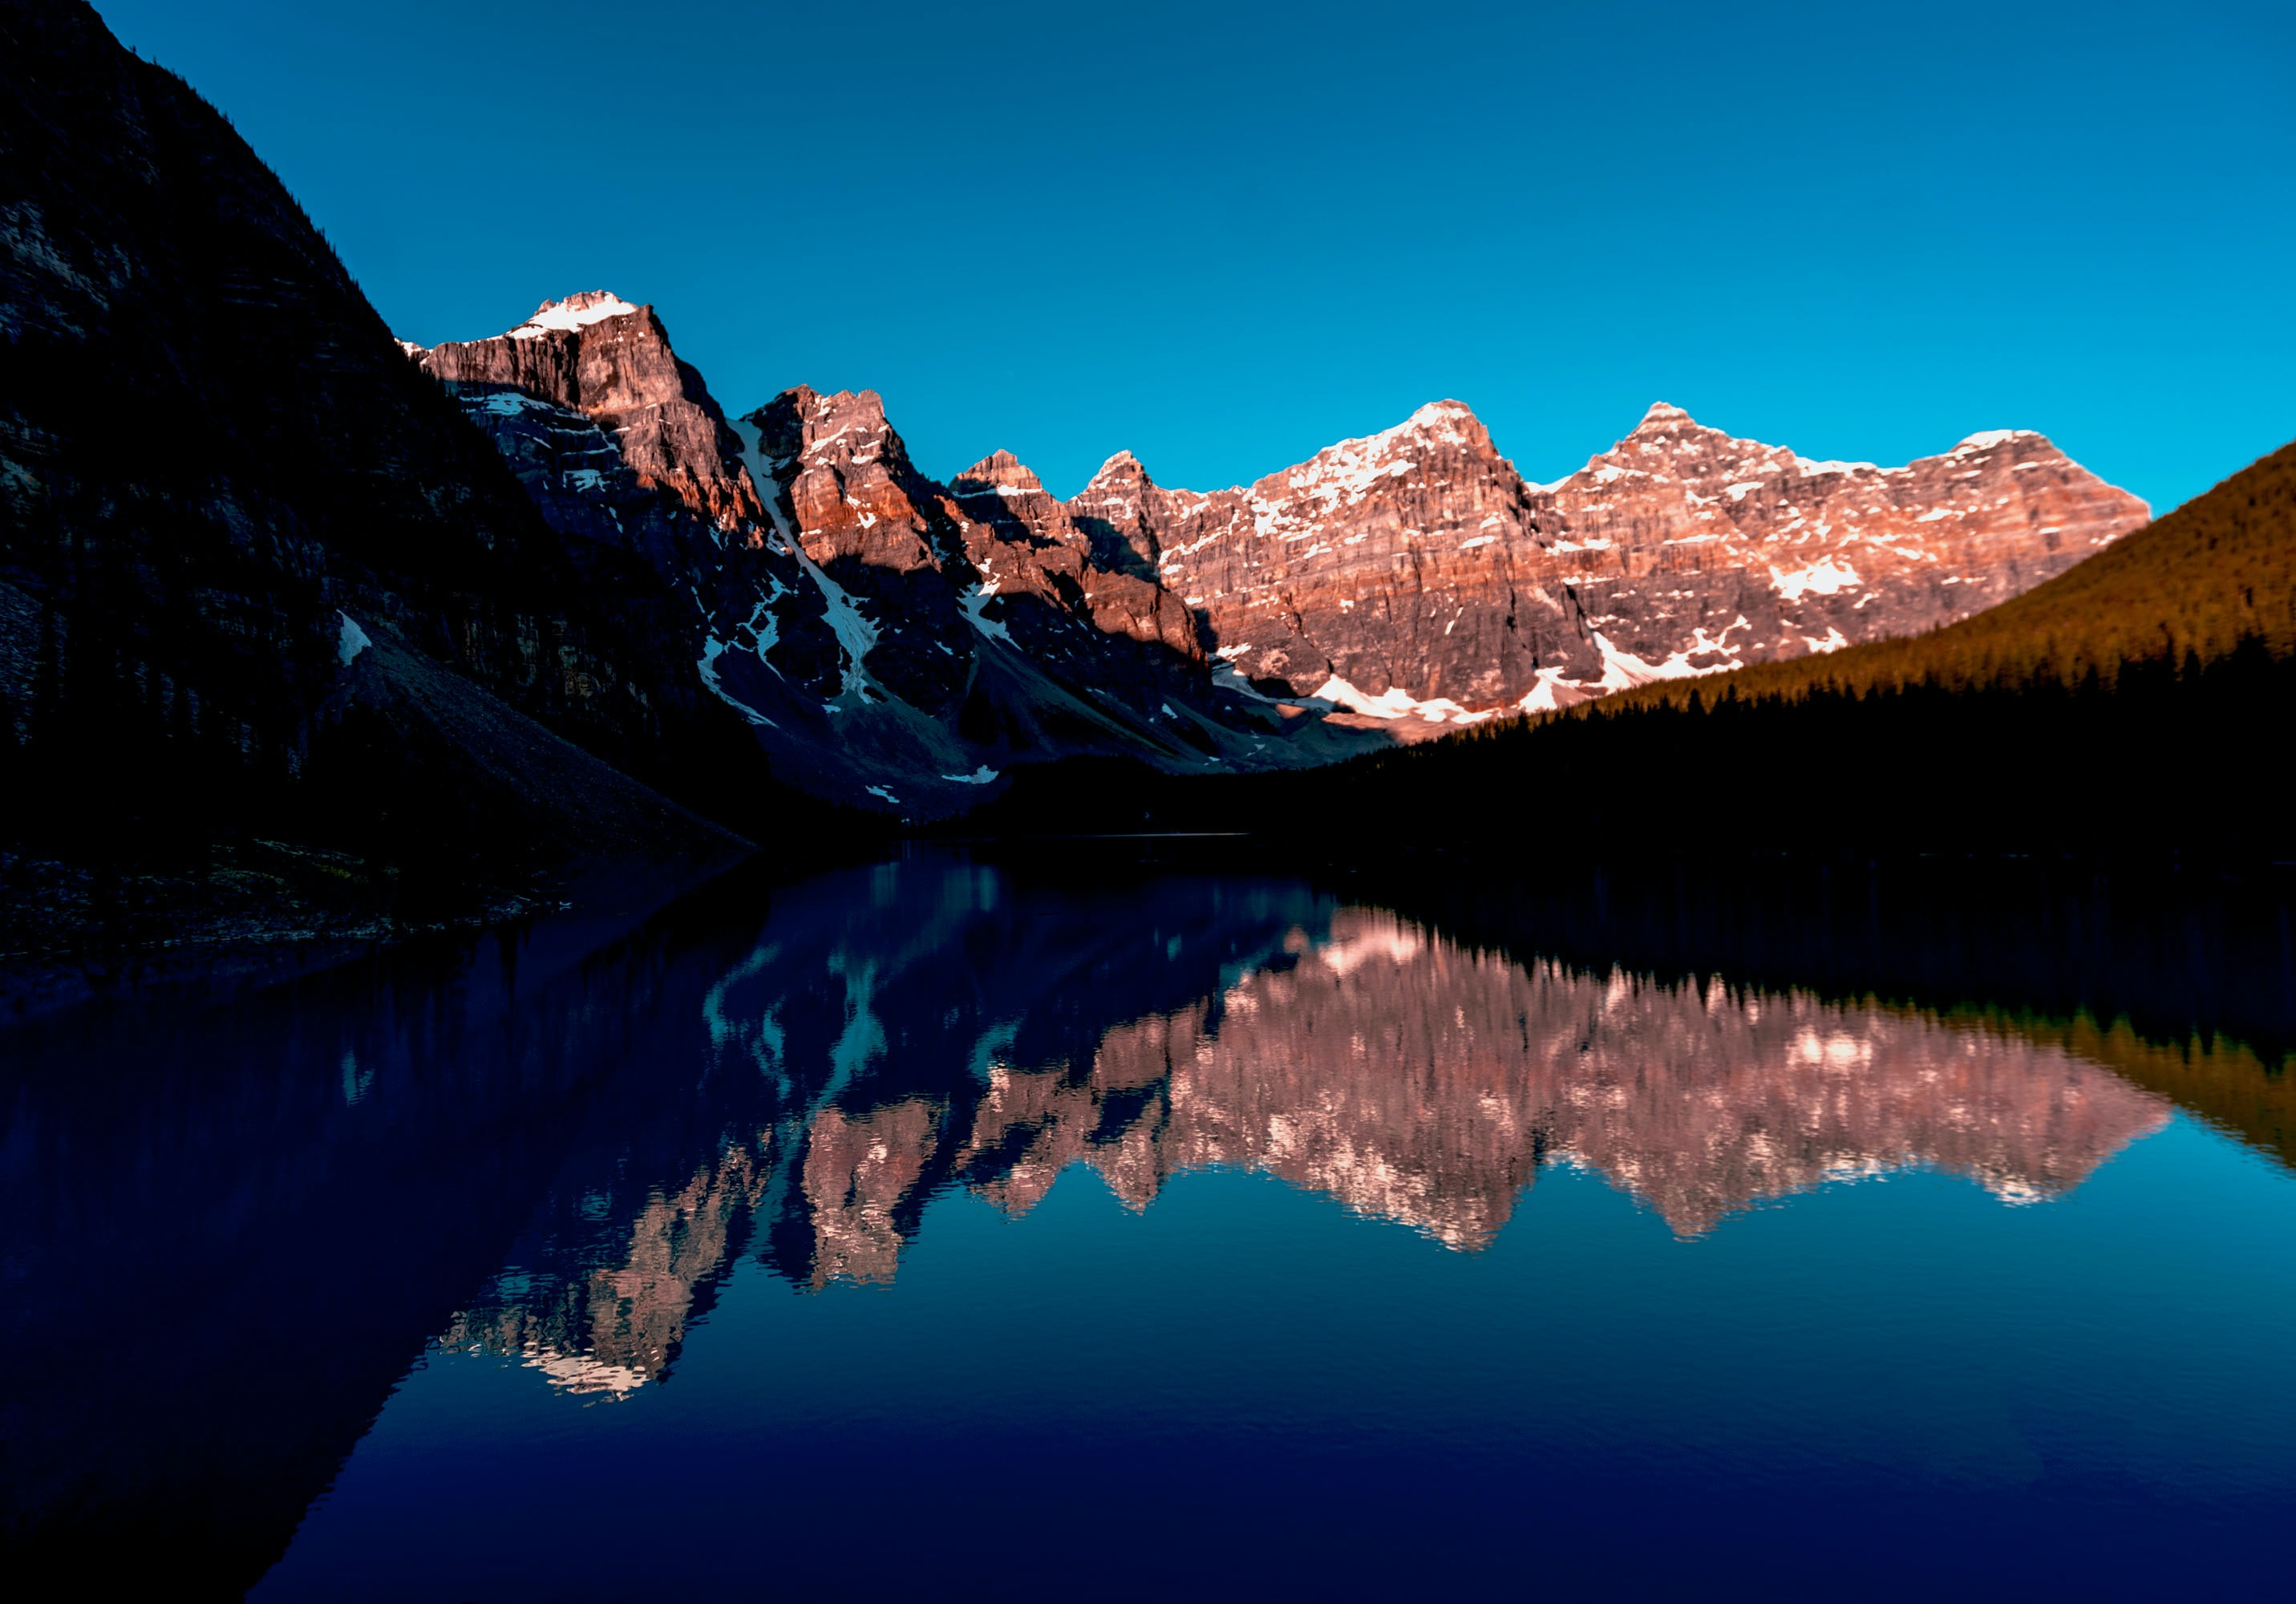 rocky mountain near the body of water photography